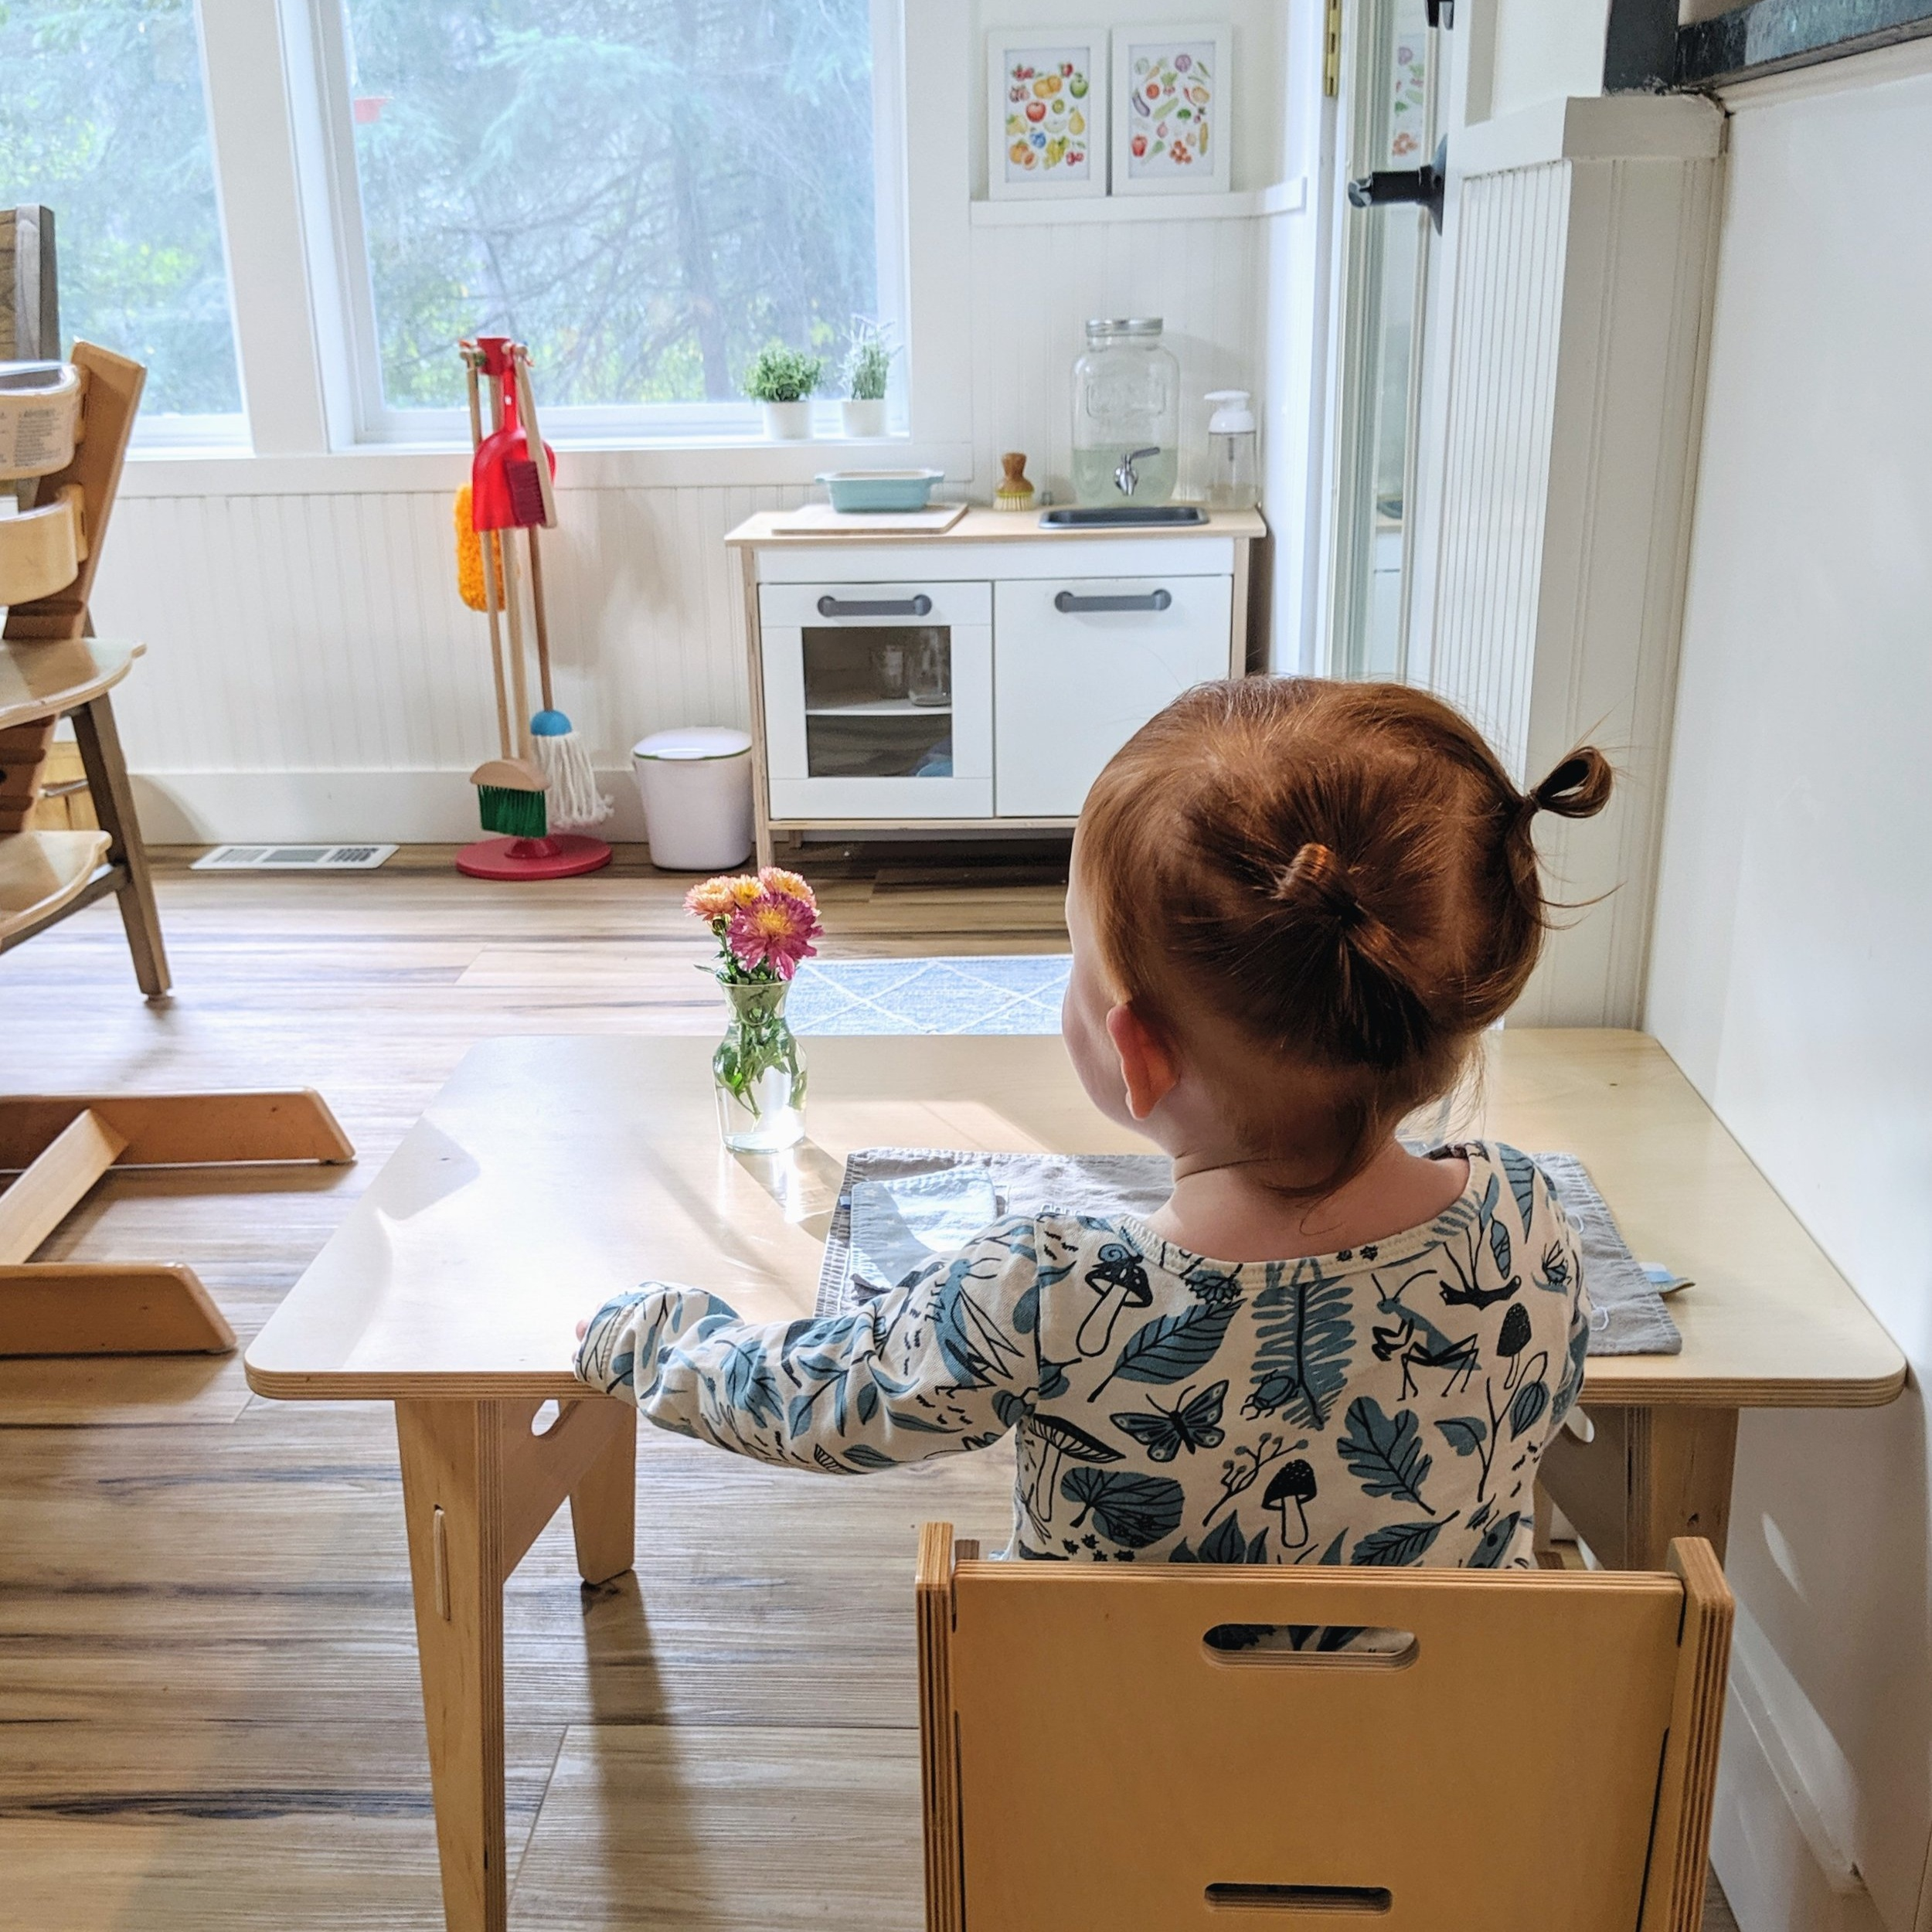 Our+Daily+Rhythm+with+a+Toddler+and+a+Baby+-+Montessori+in+Real+Life